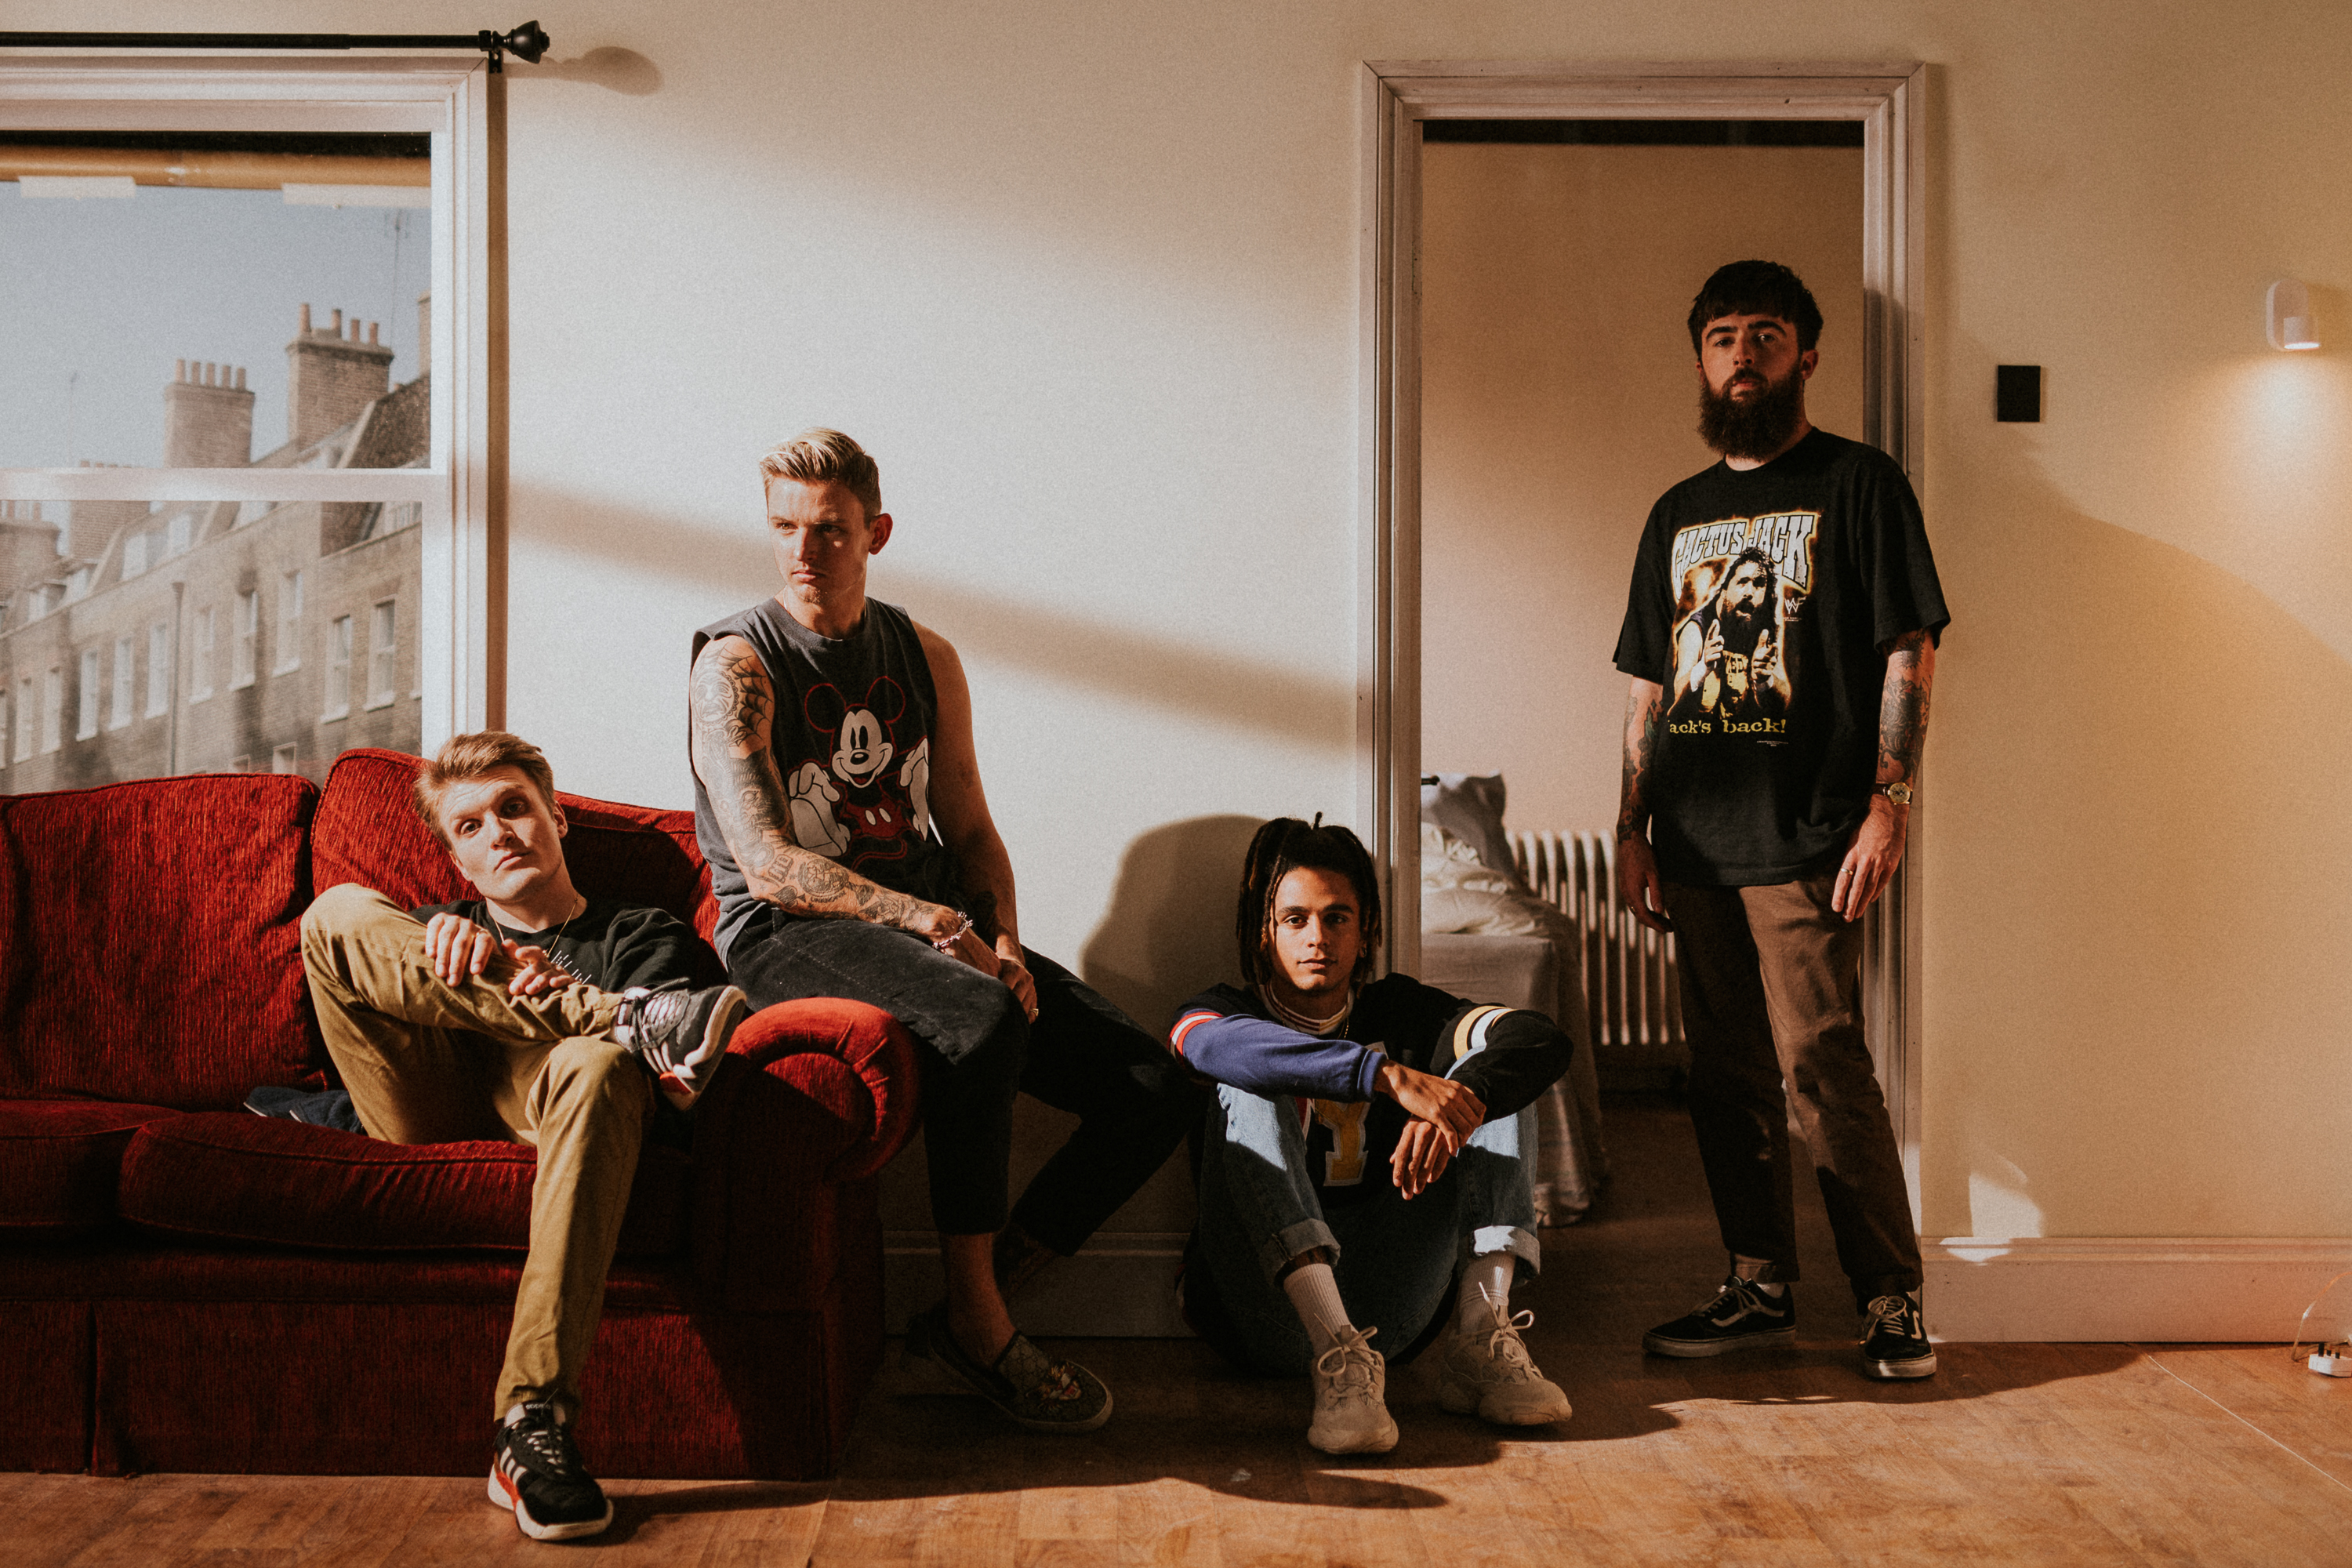 NEWS: Neck Deep, Colorama and Skindread amongst second wave of acts for Focus Wales 2019